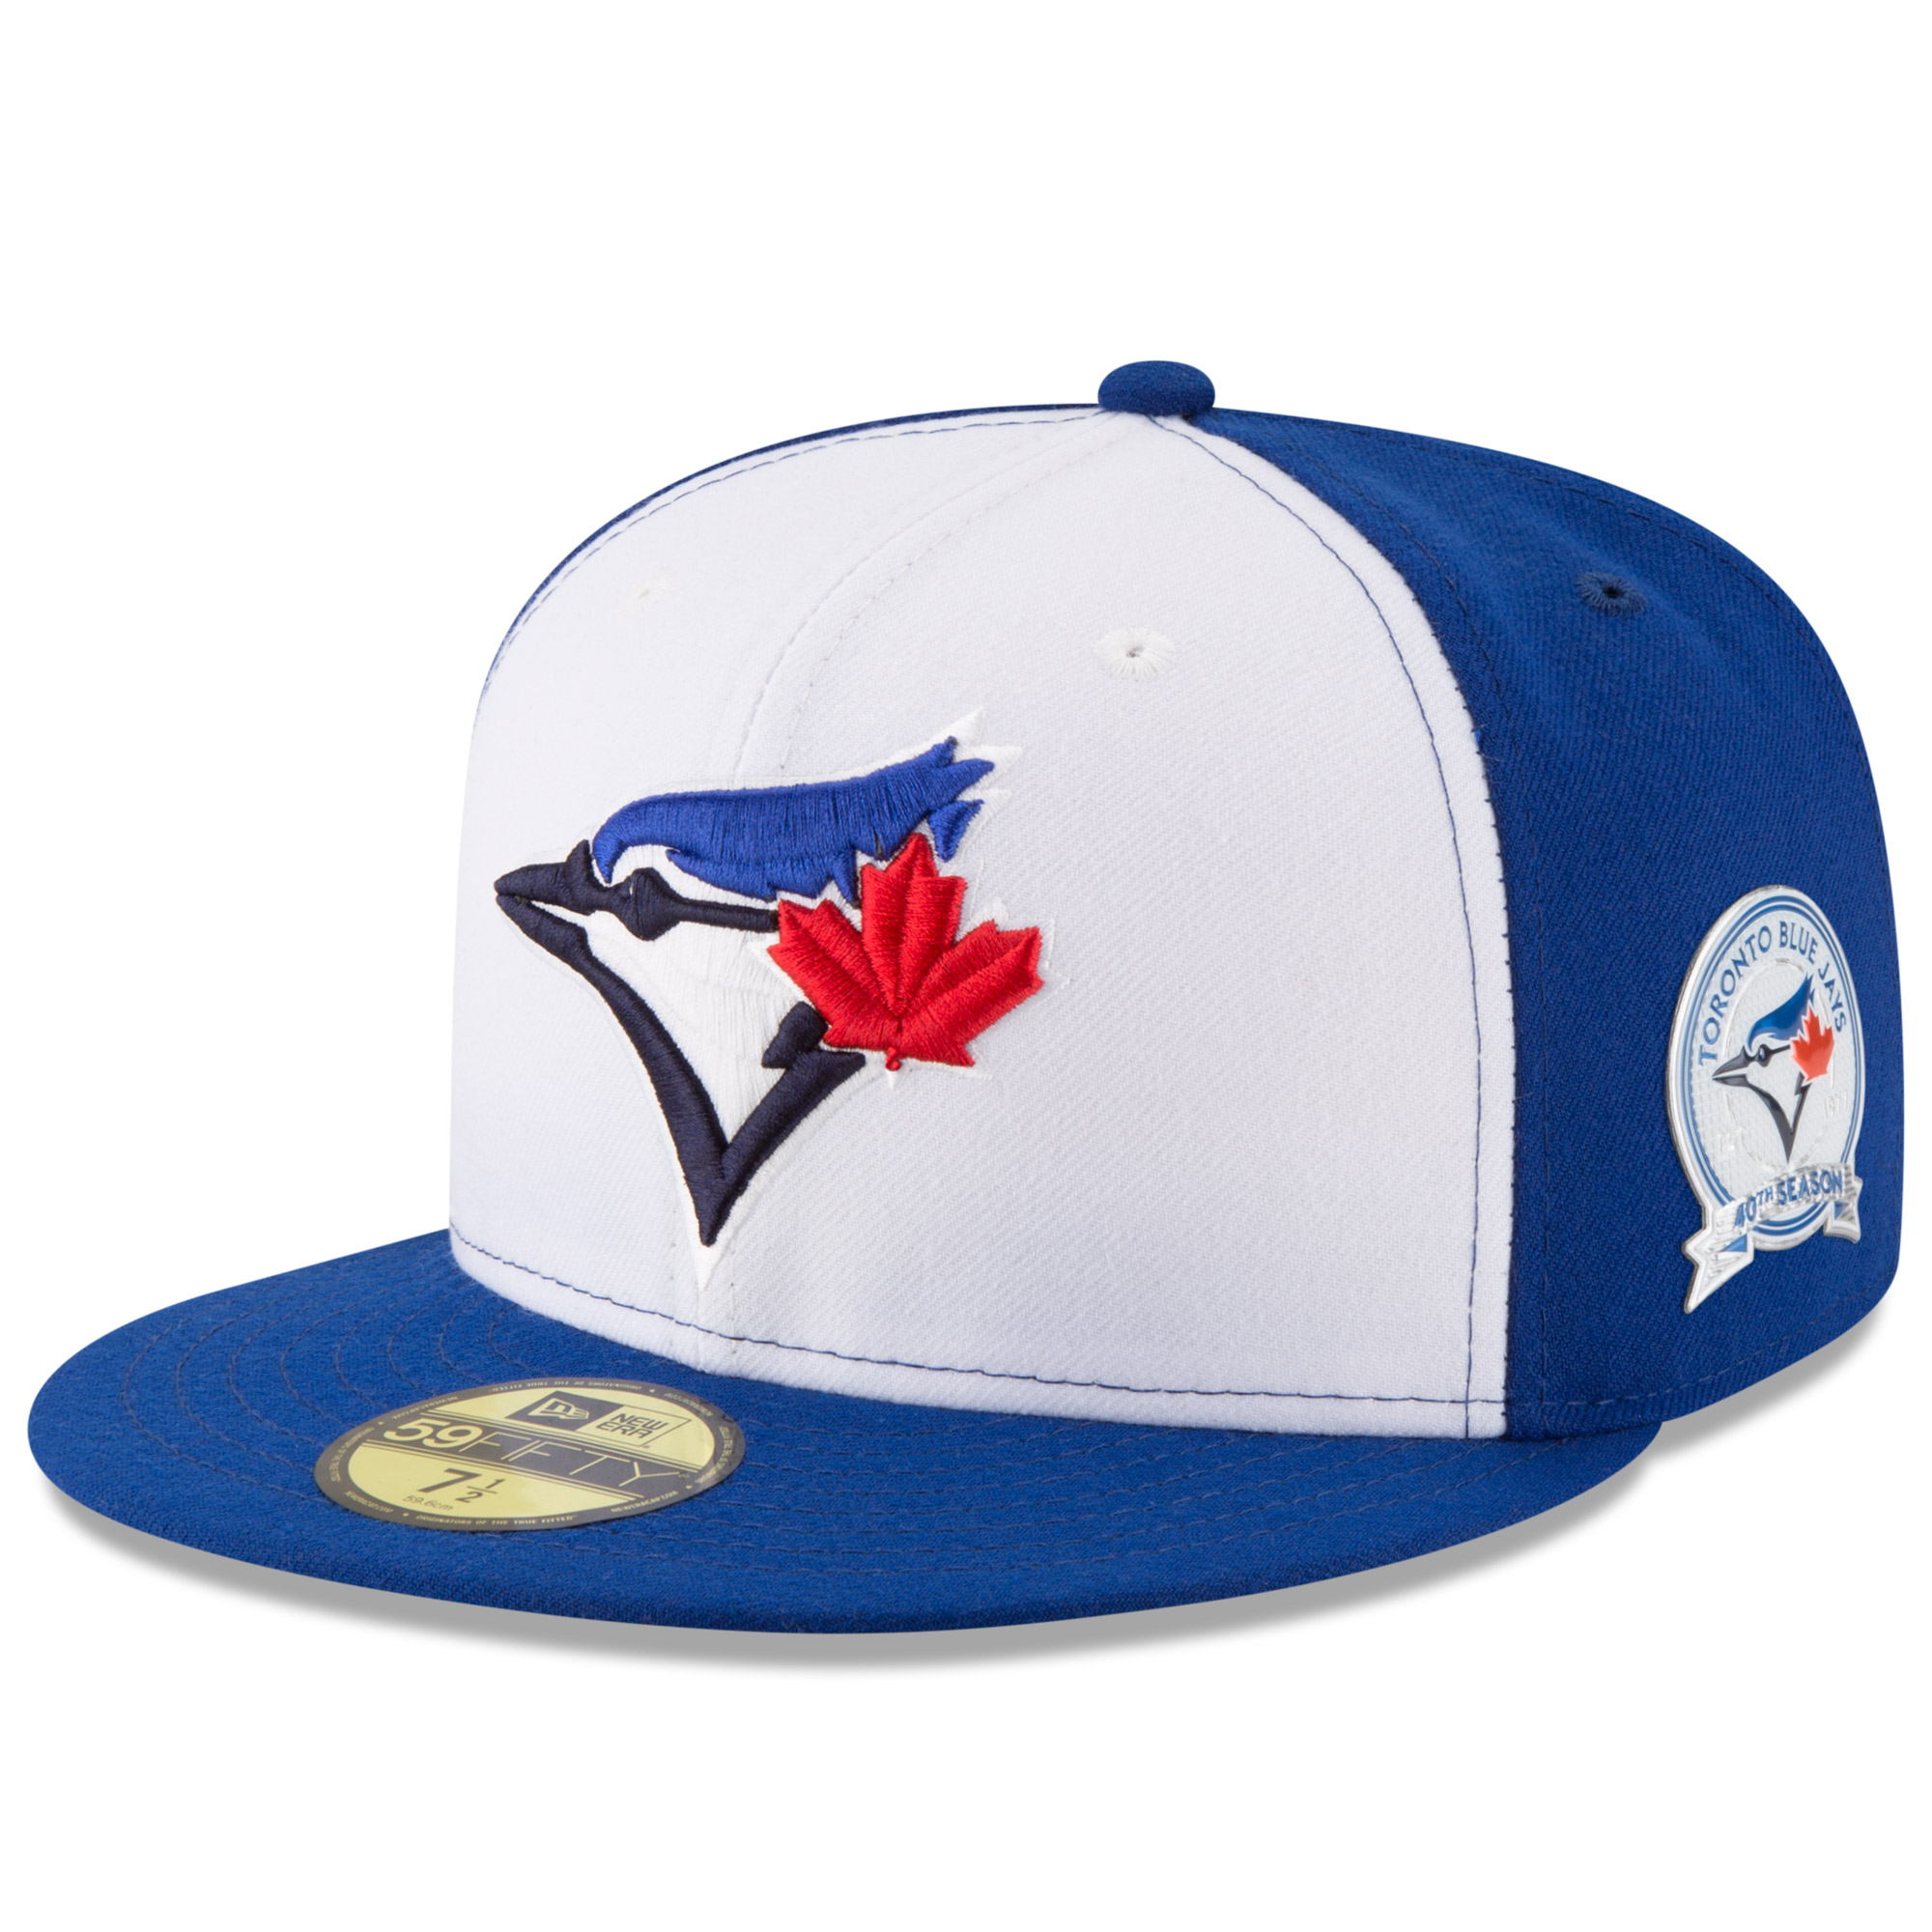 finest selection 9a991 a3d64 ... spain toronto blue jays new era 40th anniversary 59fifty fitted hat  white blue walmart 7c2ab fd5f1